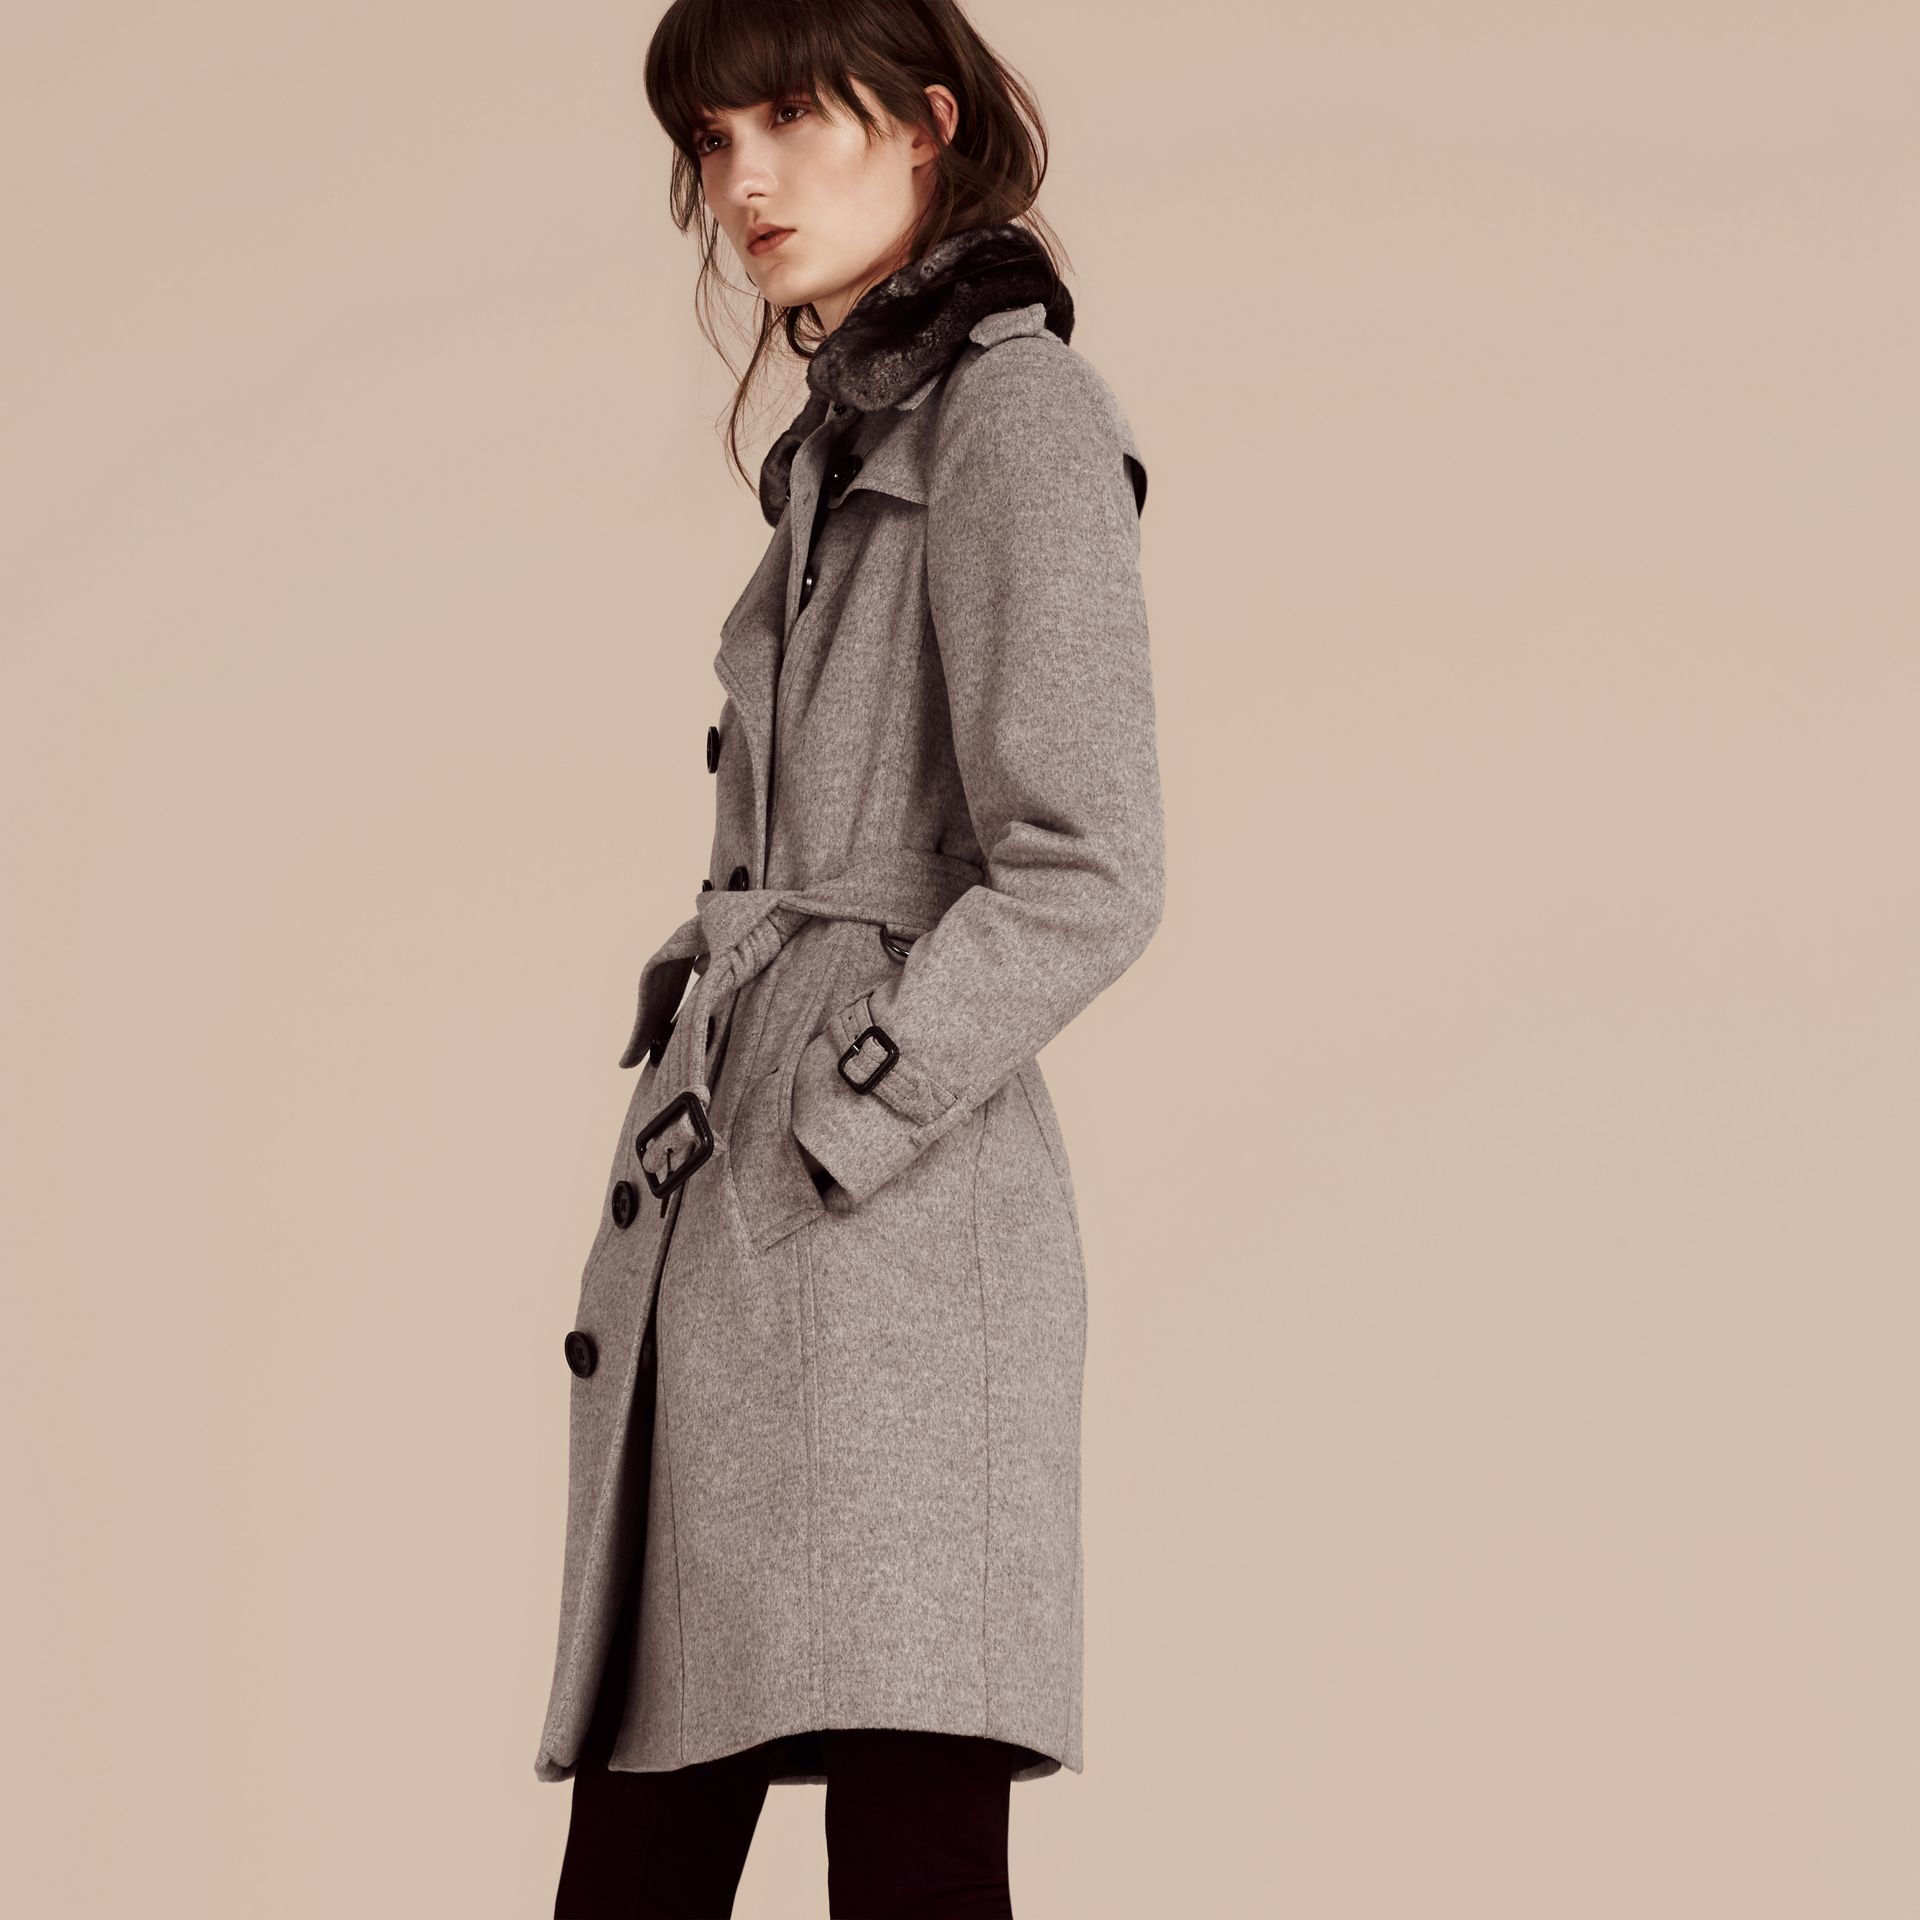 Pale grey melange Wool Cashmere Trench Coat with Fur Collar - gallery image 5